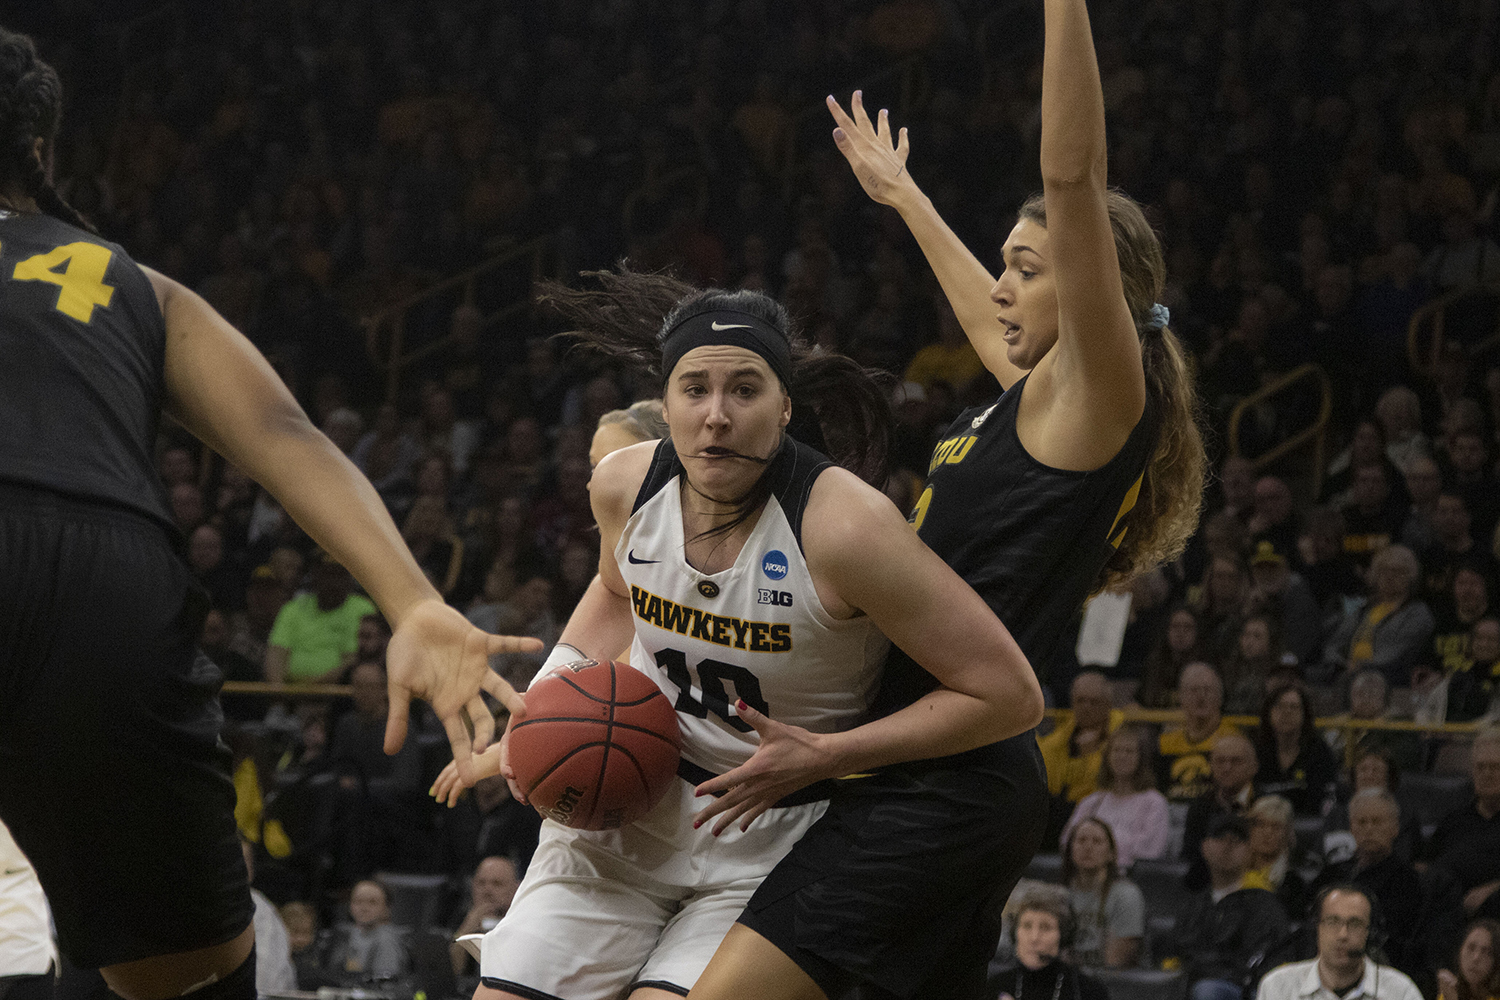 Carleton and Gustafson Both Drafted in WNBA's 2nd Round